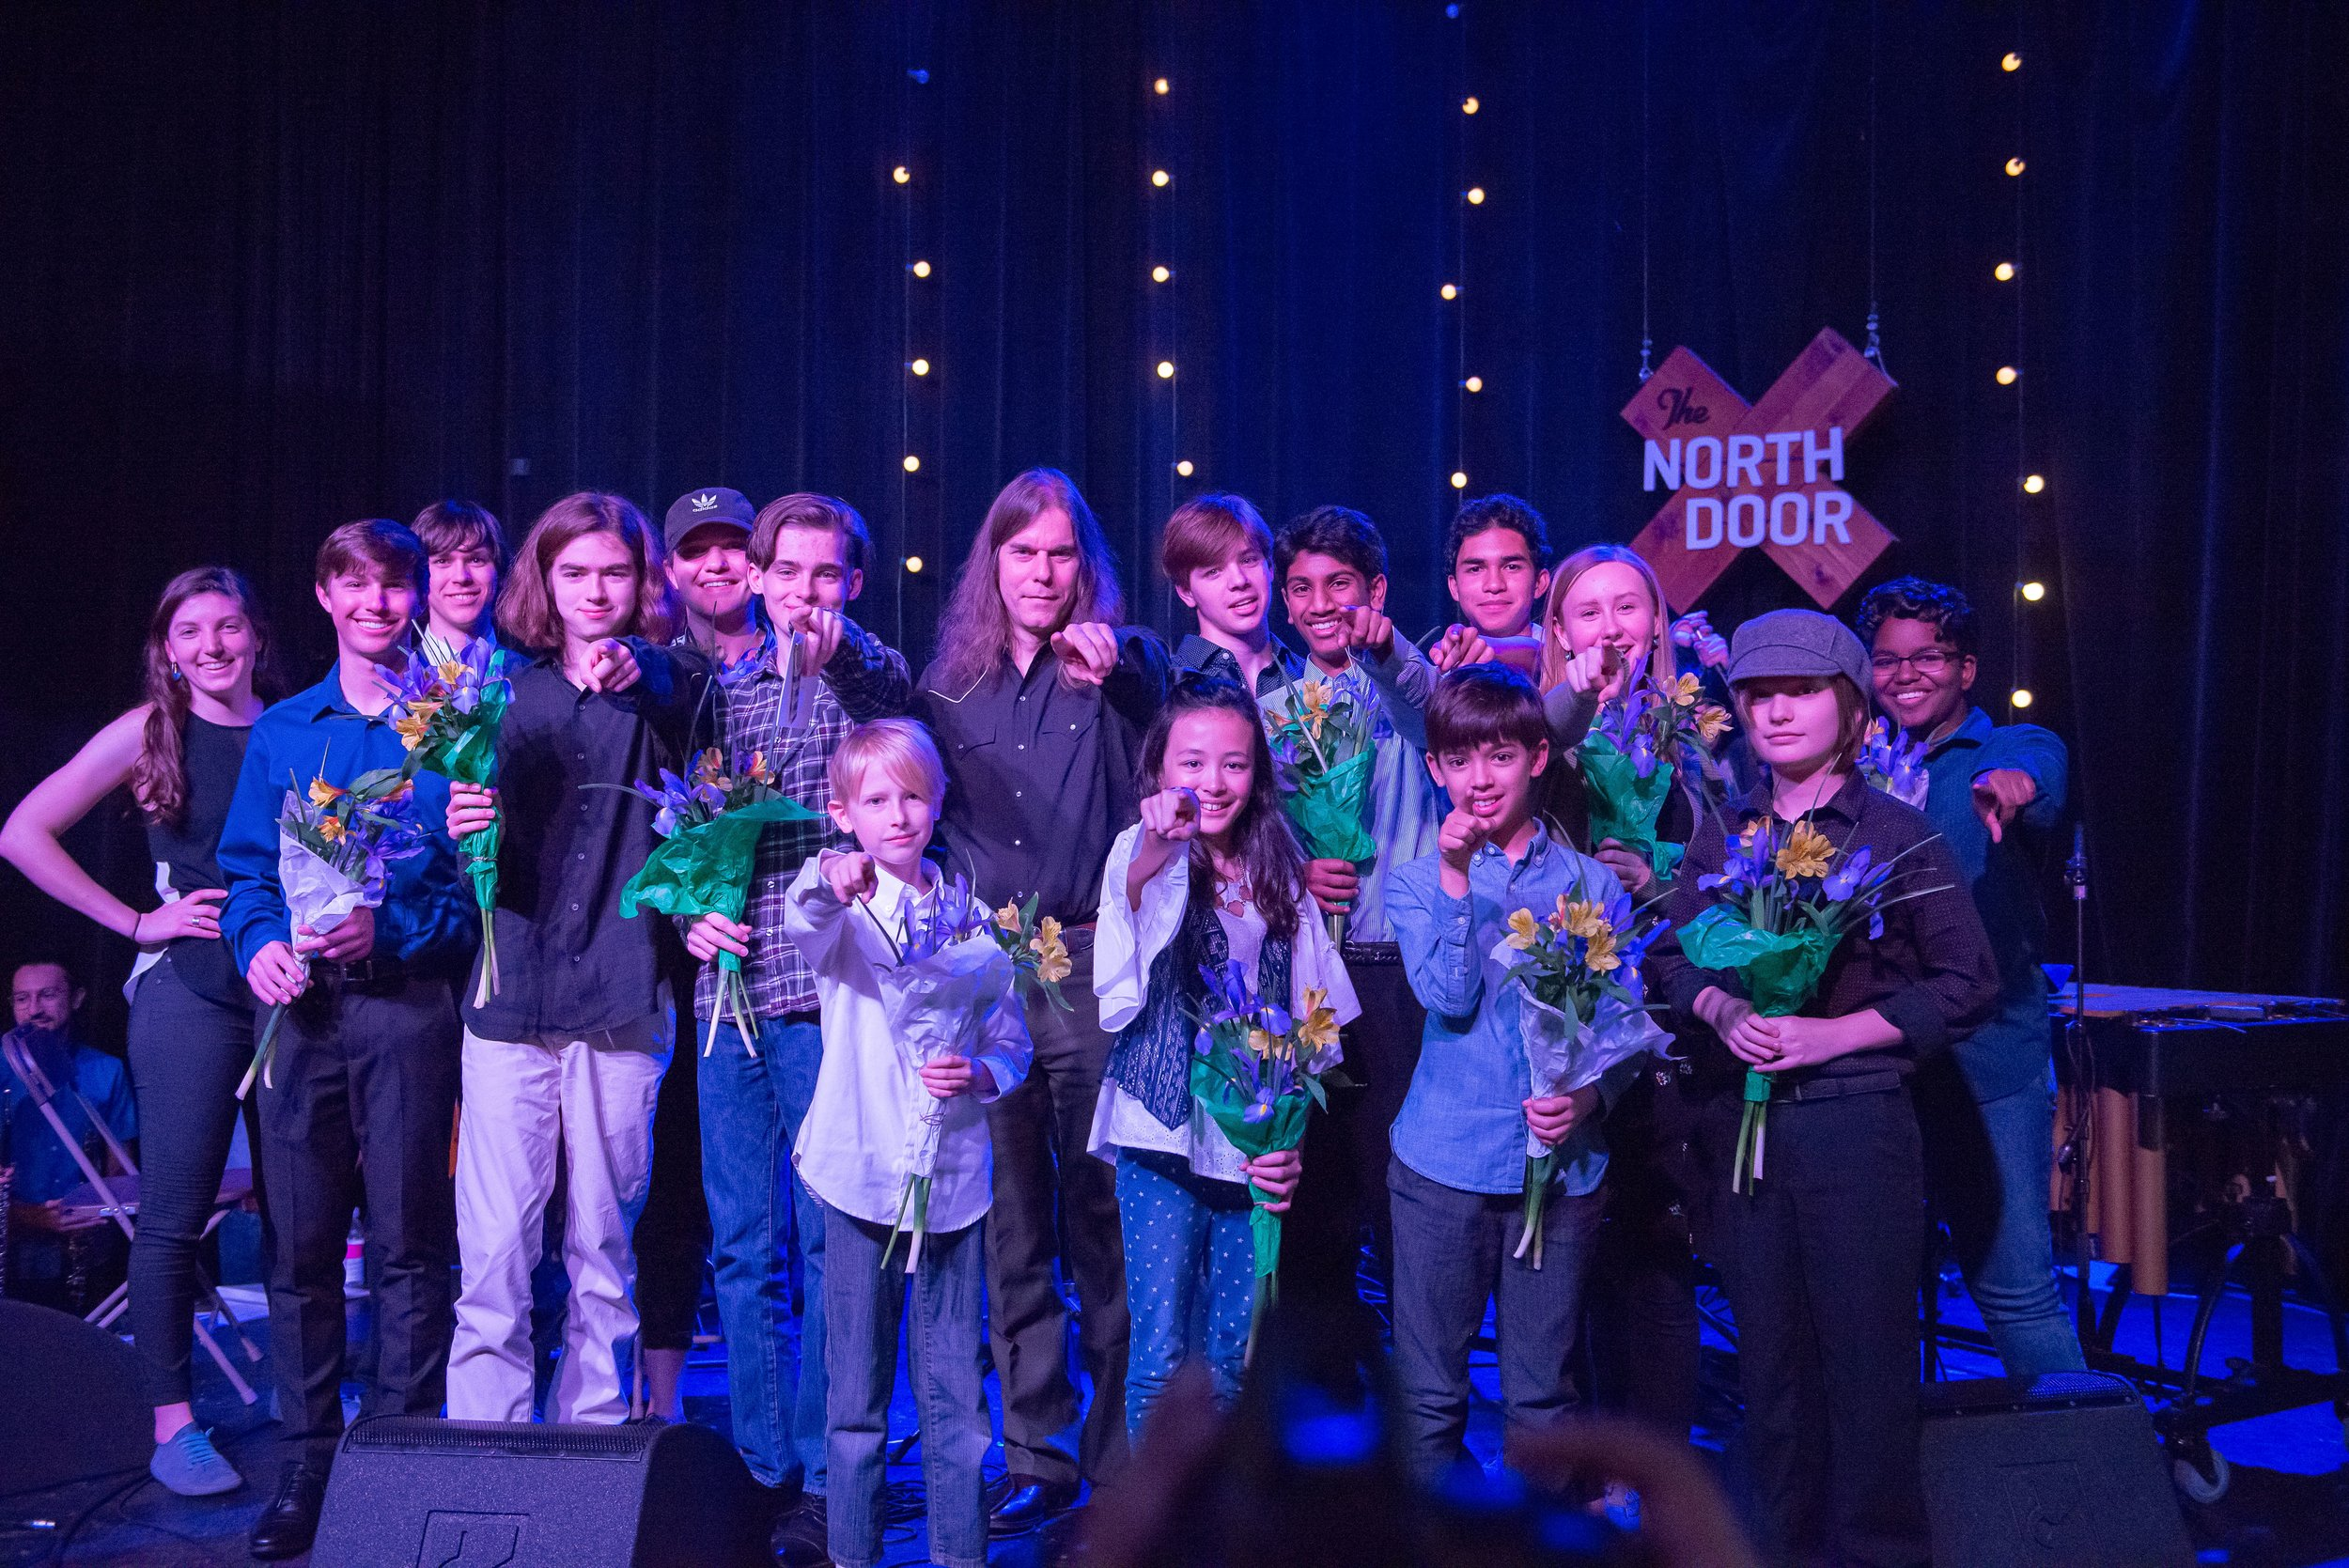 Young composers on stage holding flower bouquets and pointing at the camera.